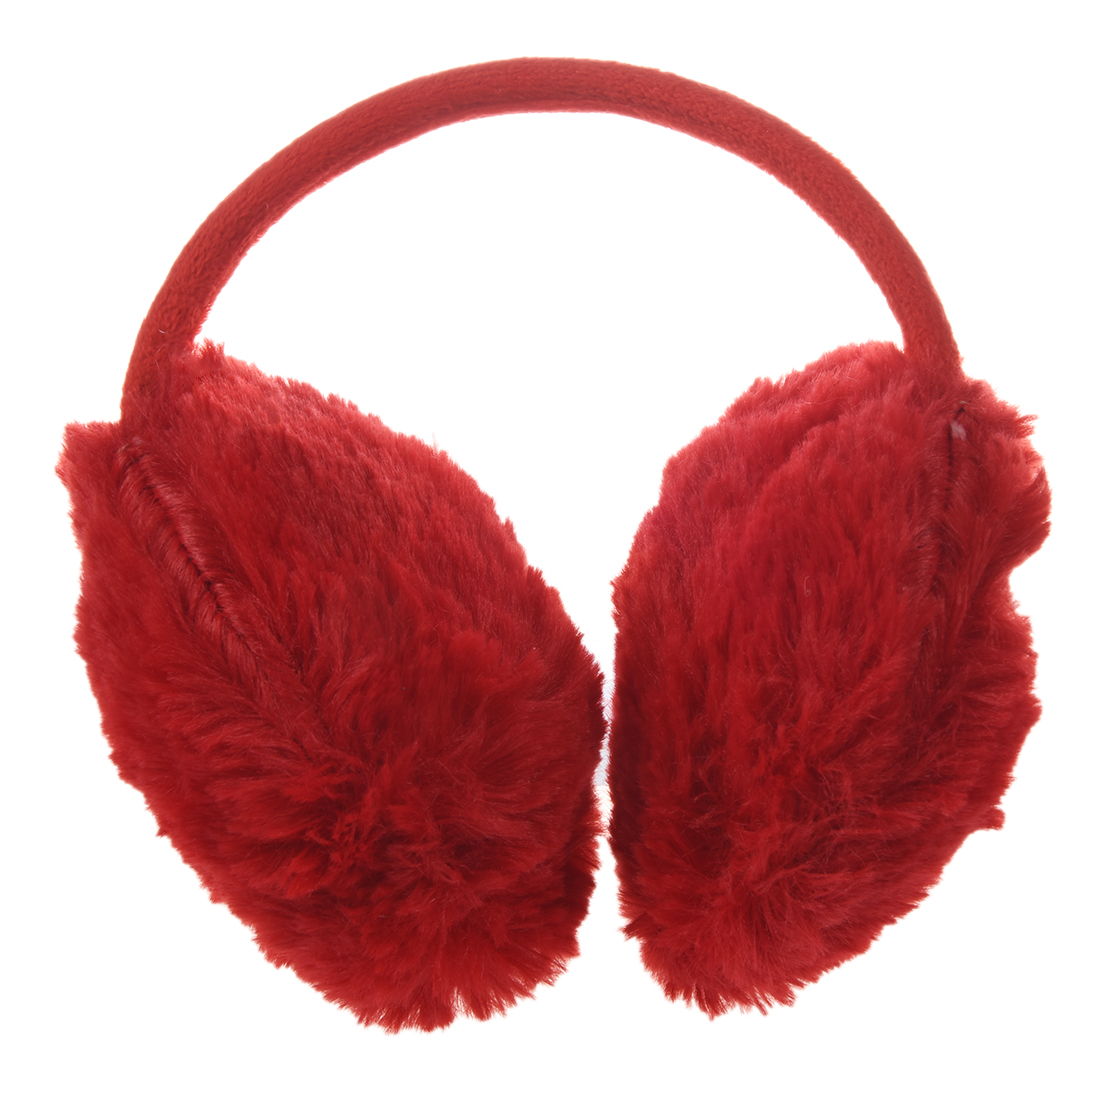 sale plastic headwear red fluffy plush ear covers winter. Black Bedroom Furniture Sets. Home Design Ideas